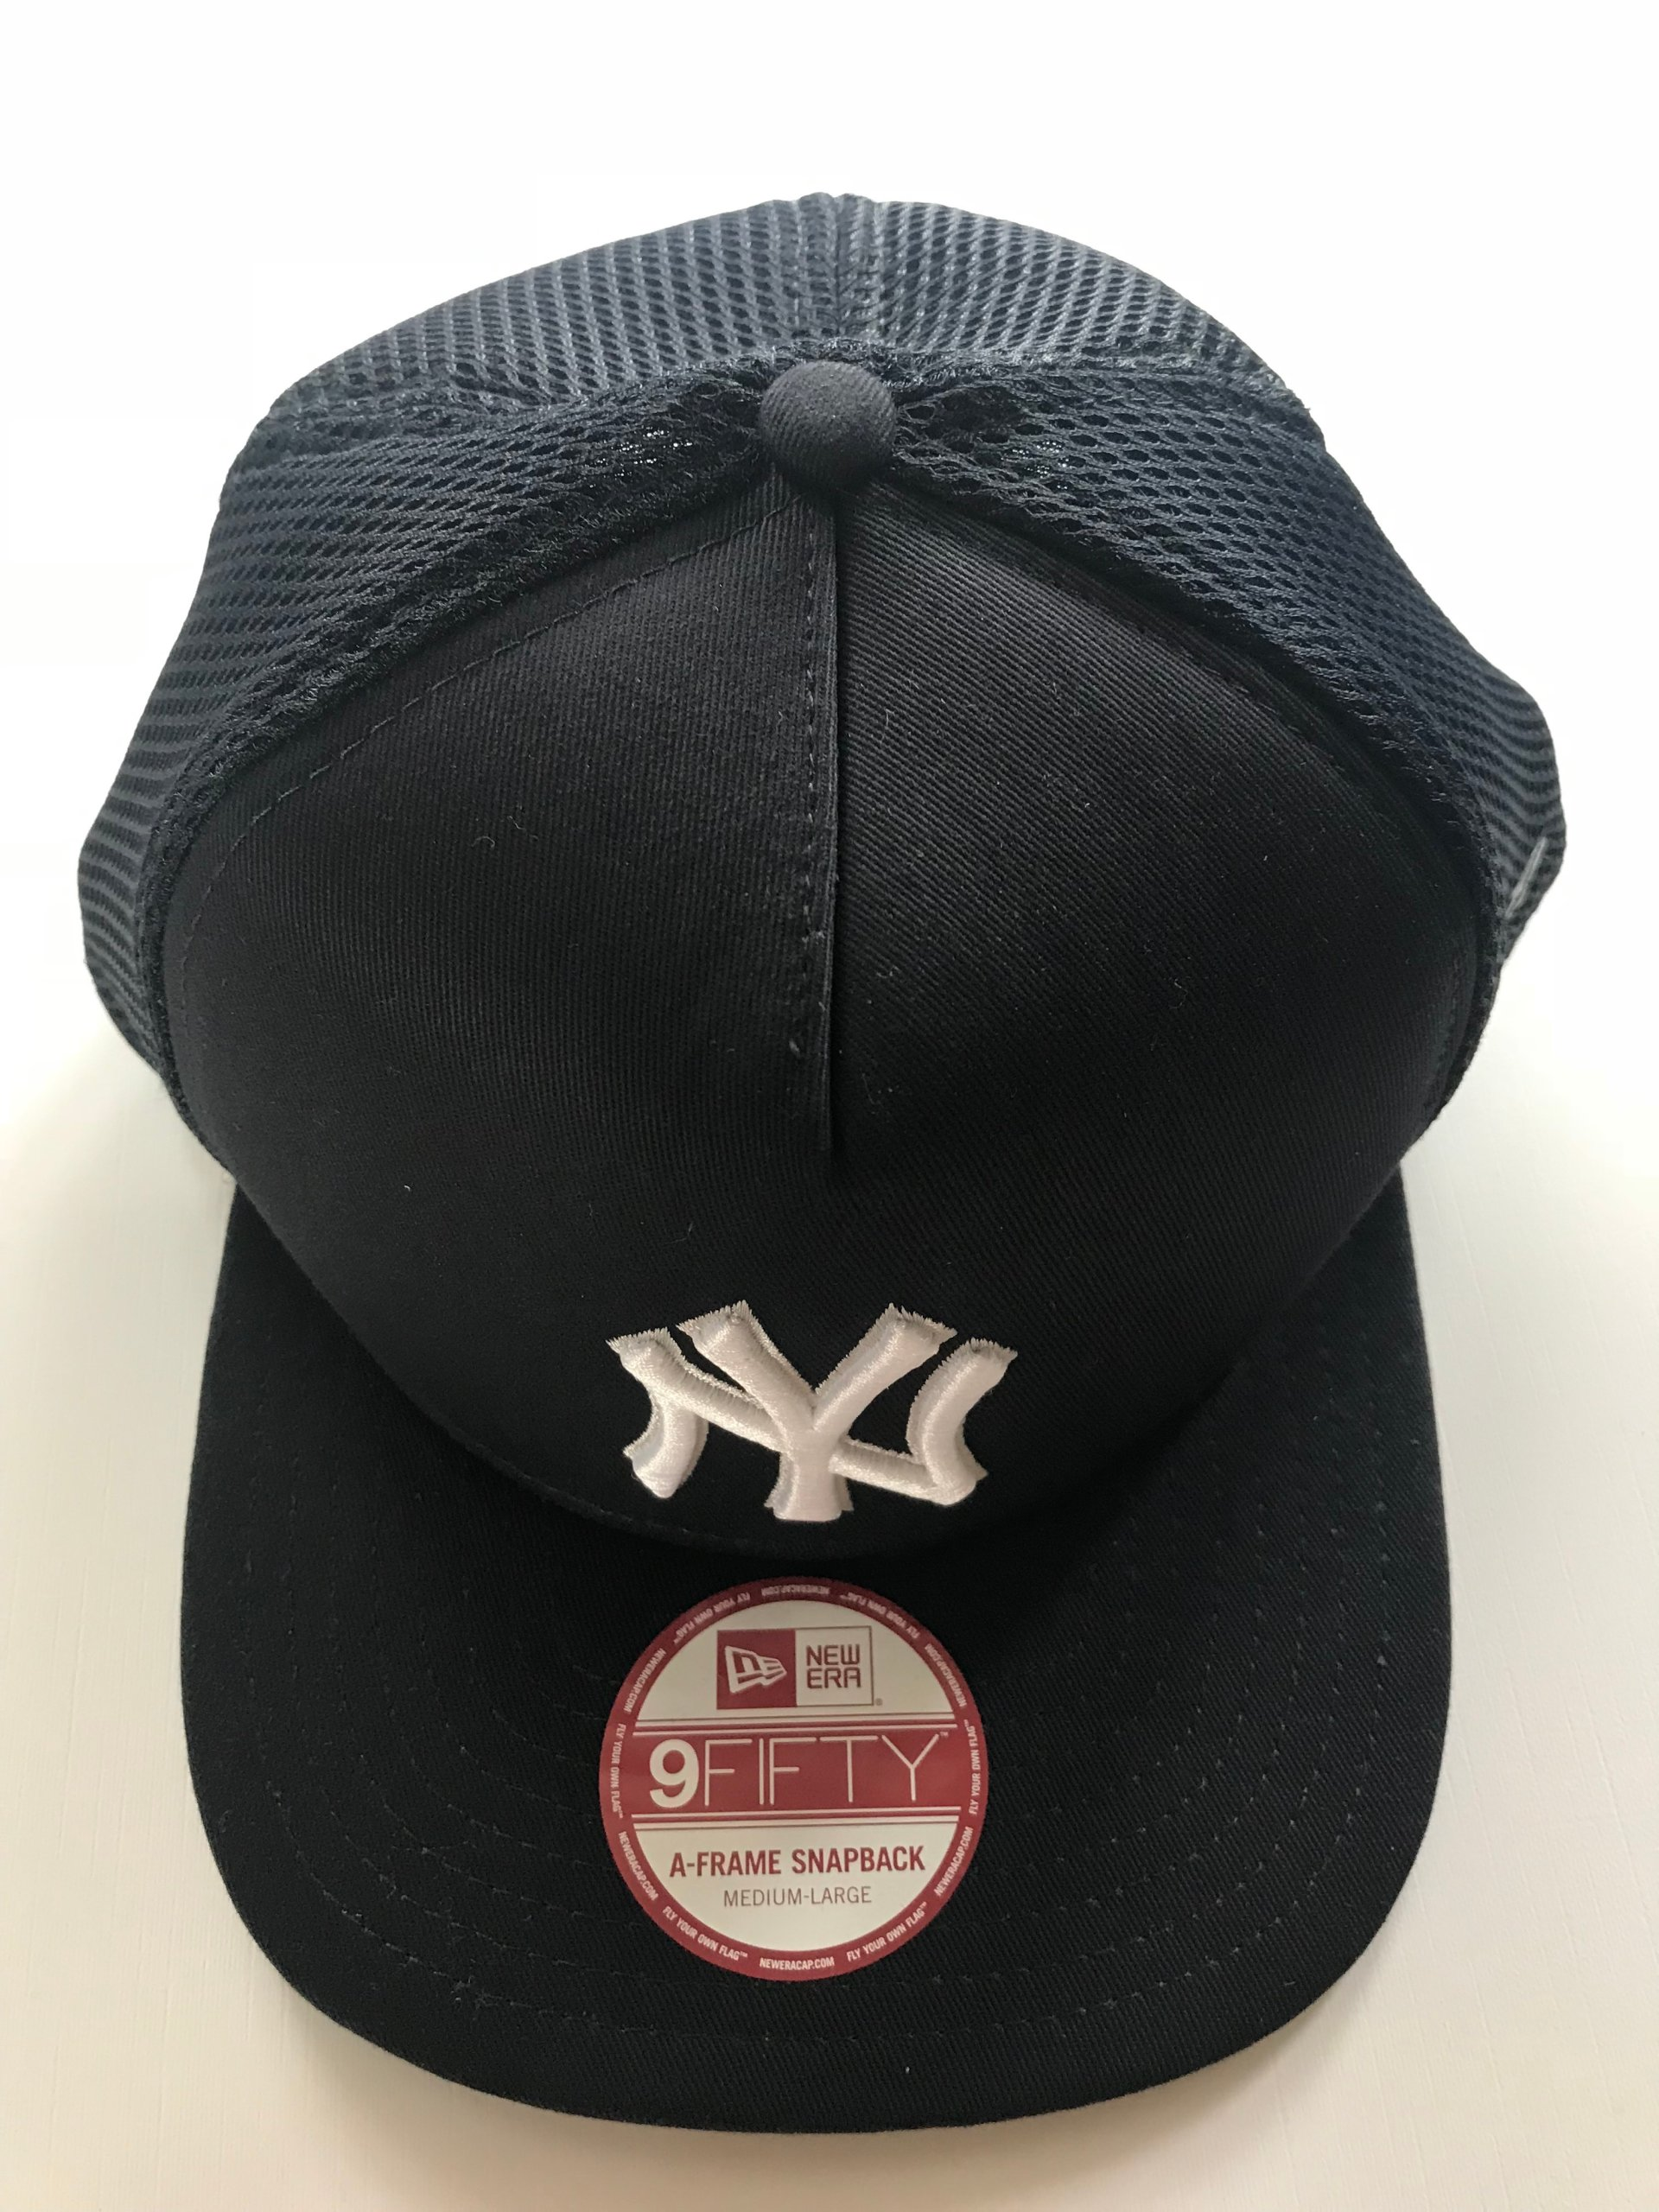 1ecae6e4a8c Czapka NEW ERA 9FIFTY Snapback NEW YORK - M L 7323630528 - Allegro.pl